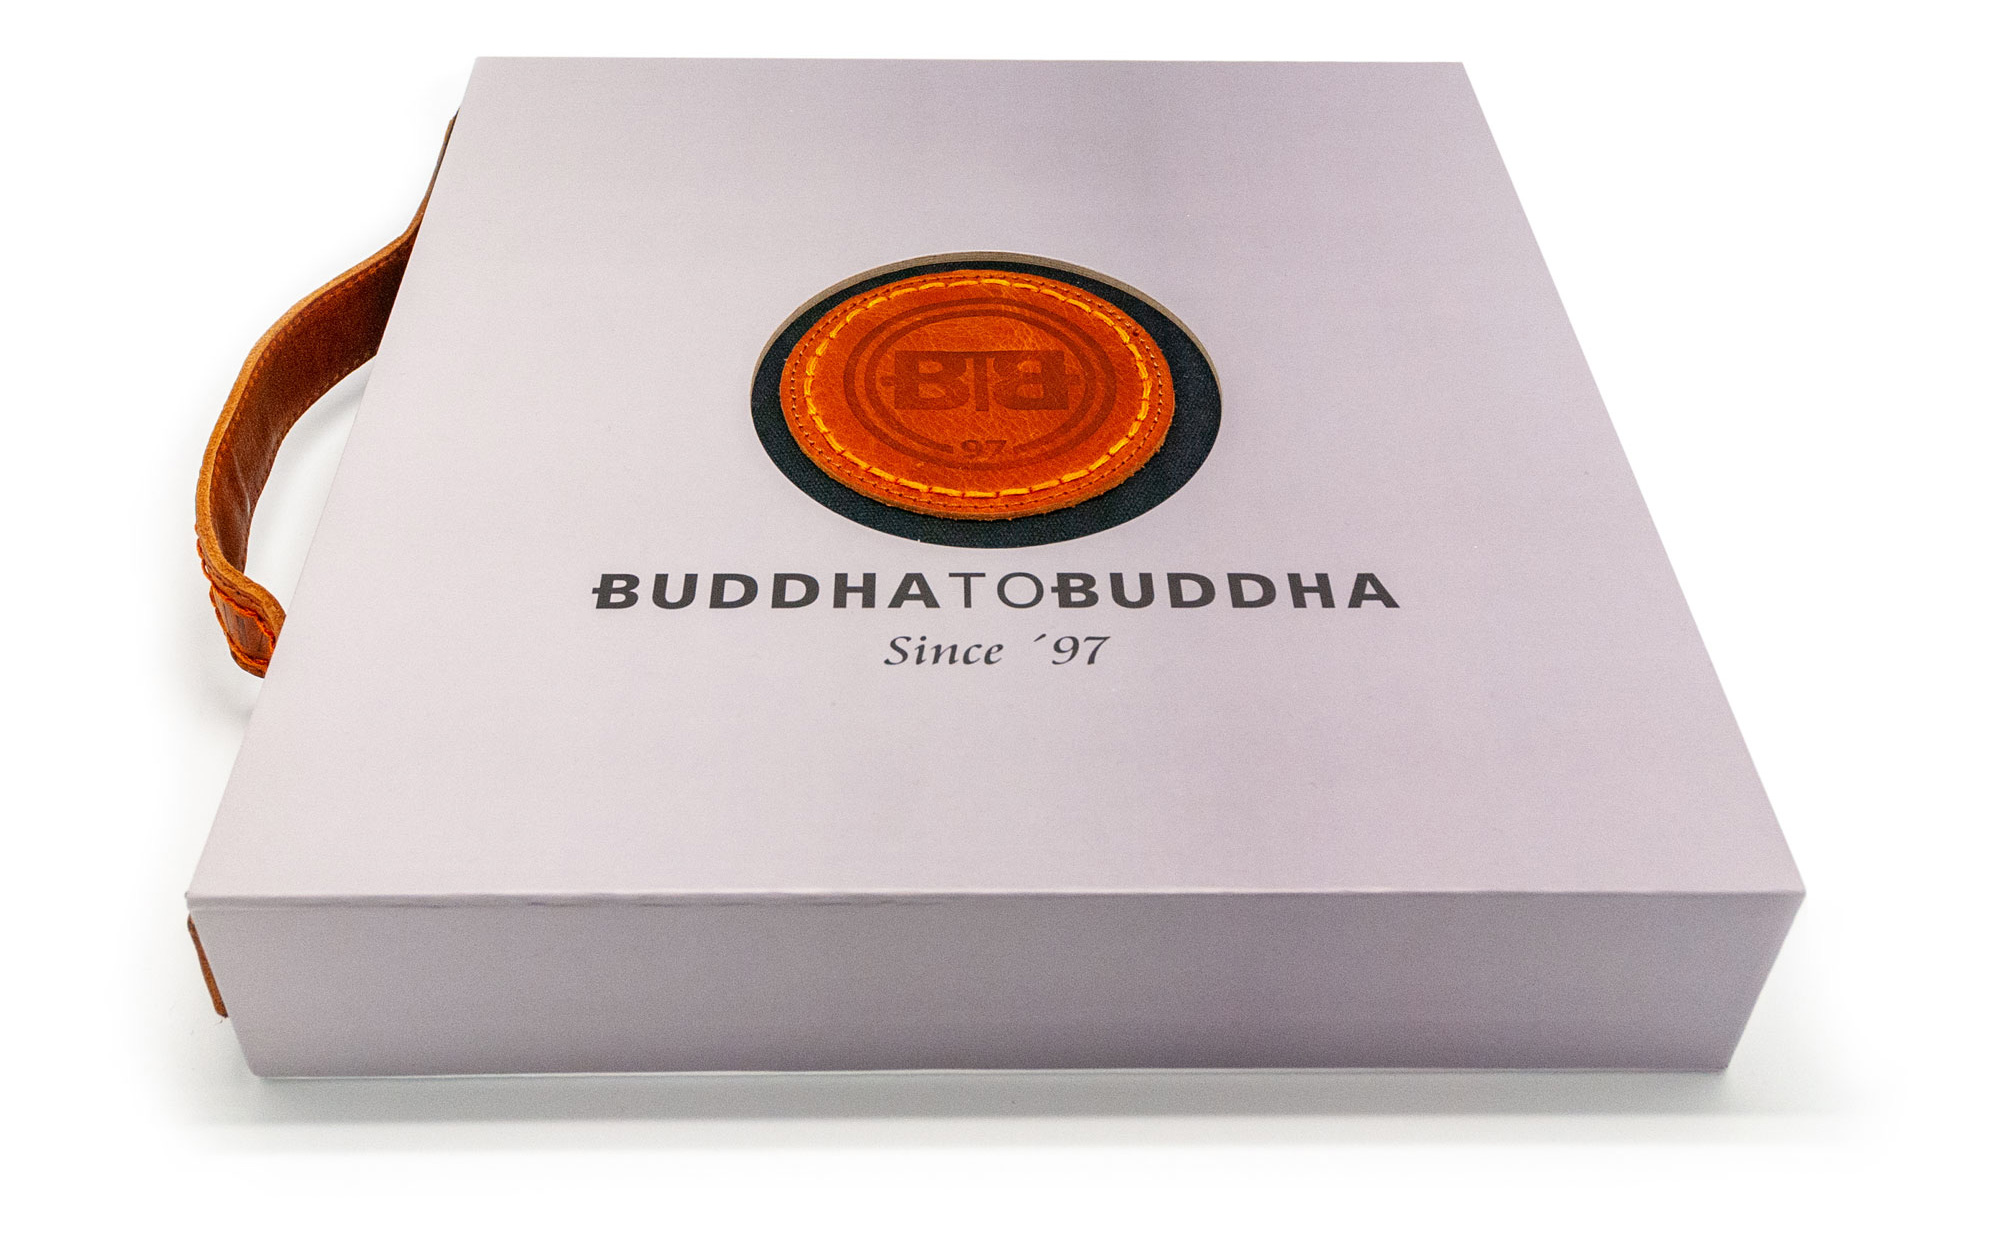 Buddha to Buddha - book and sleeve